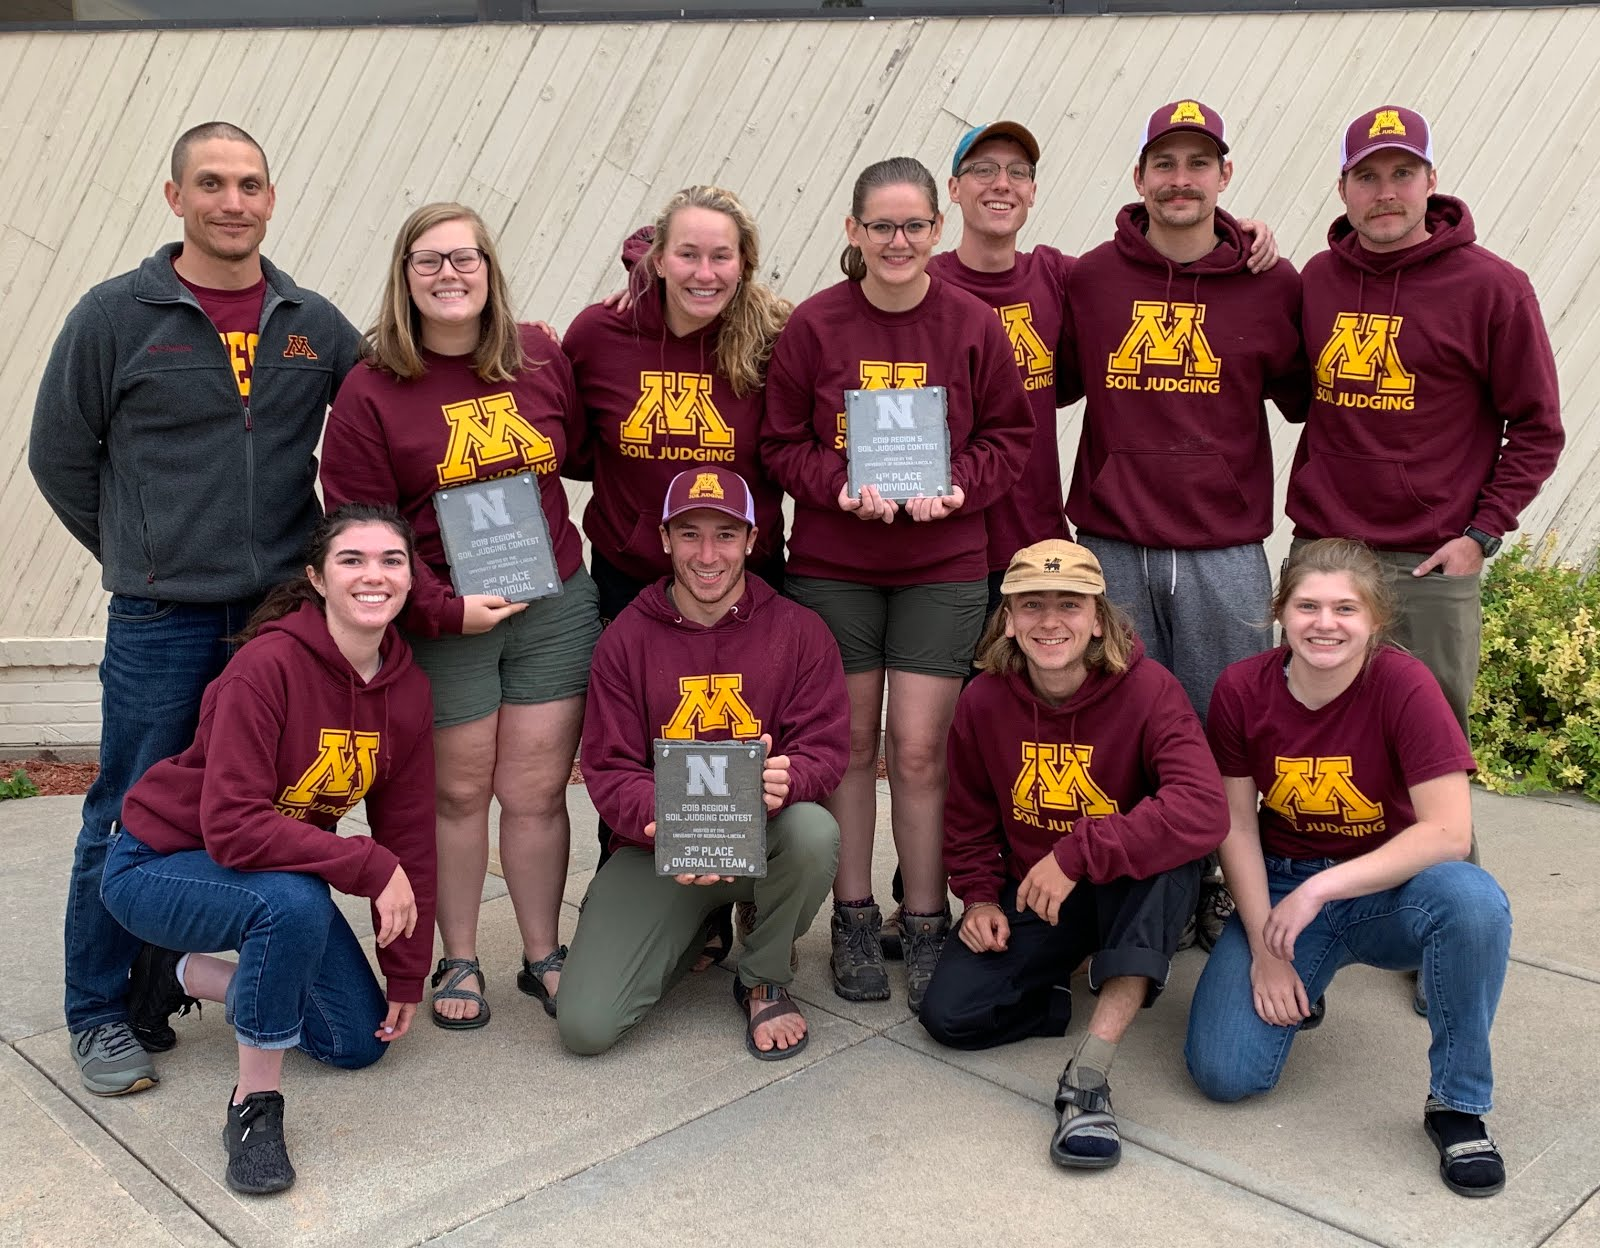 2019 University of Minnesota ASA Regional Soil Judging Team